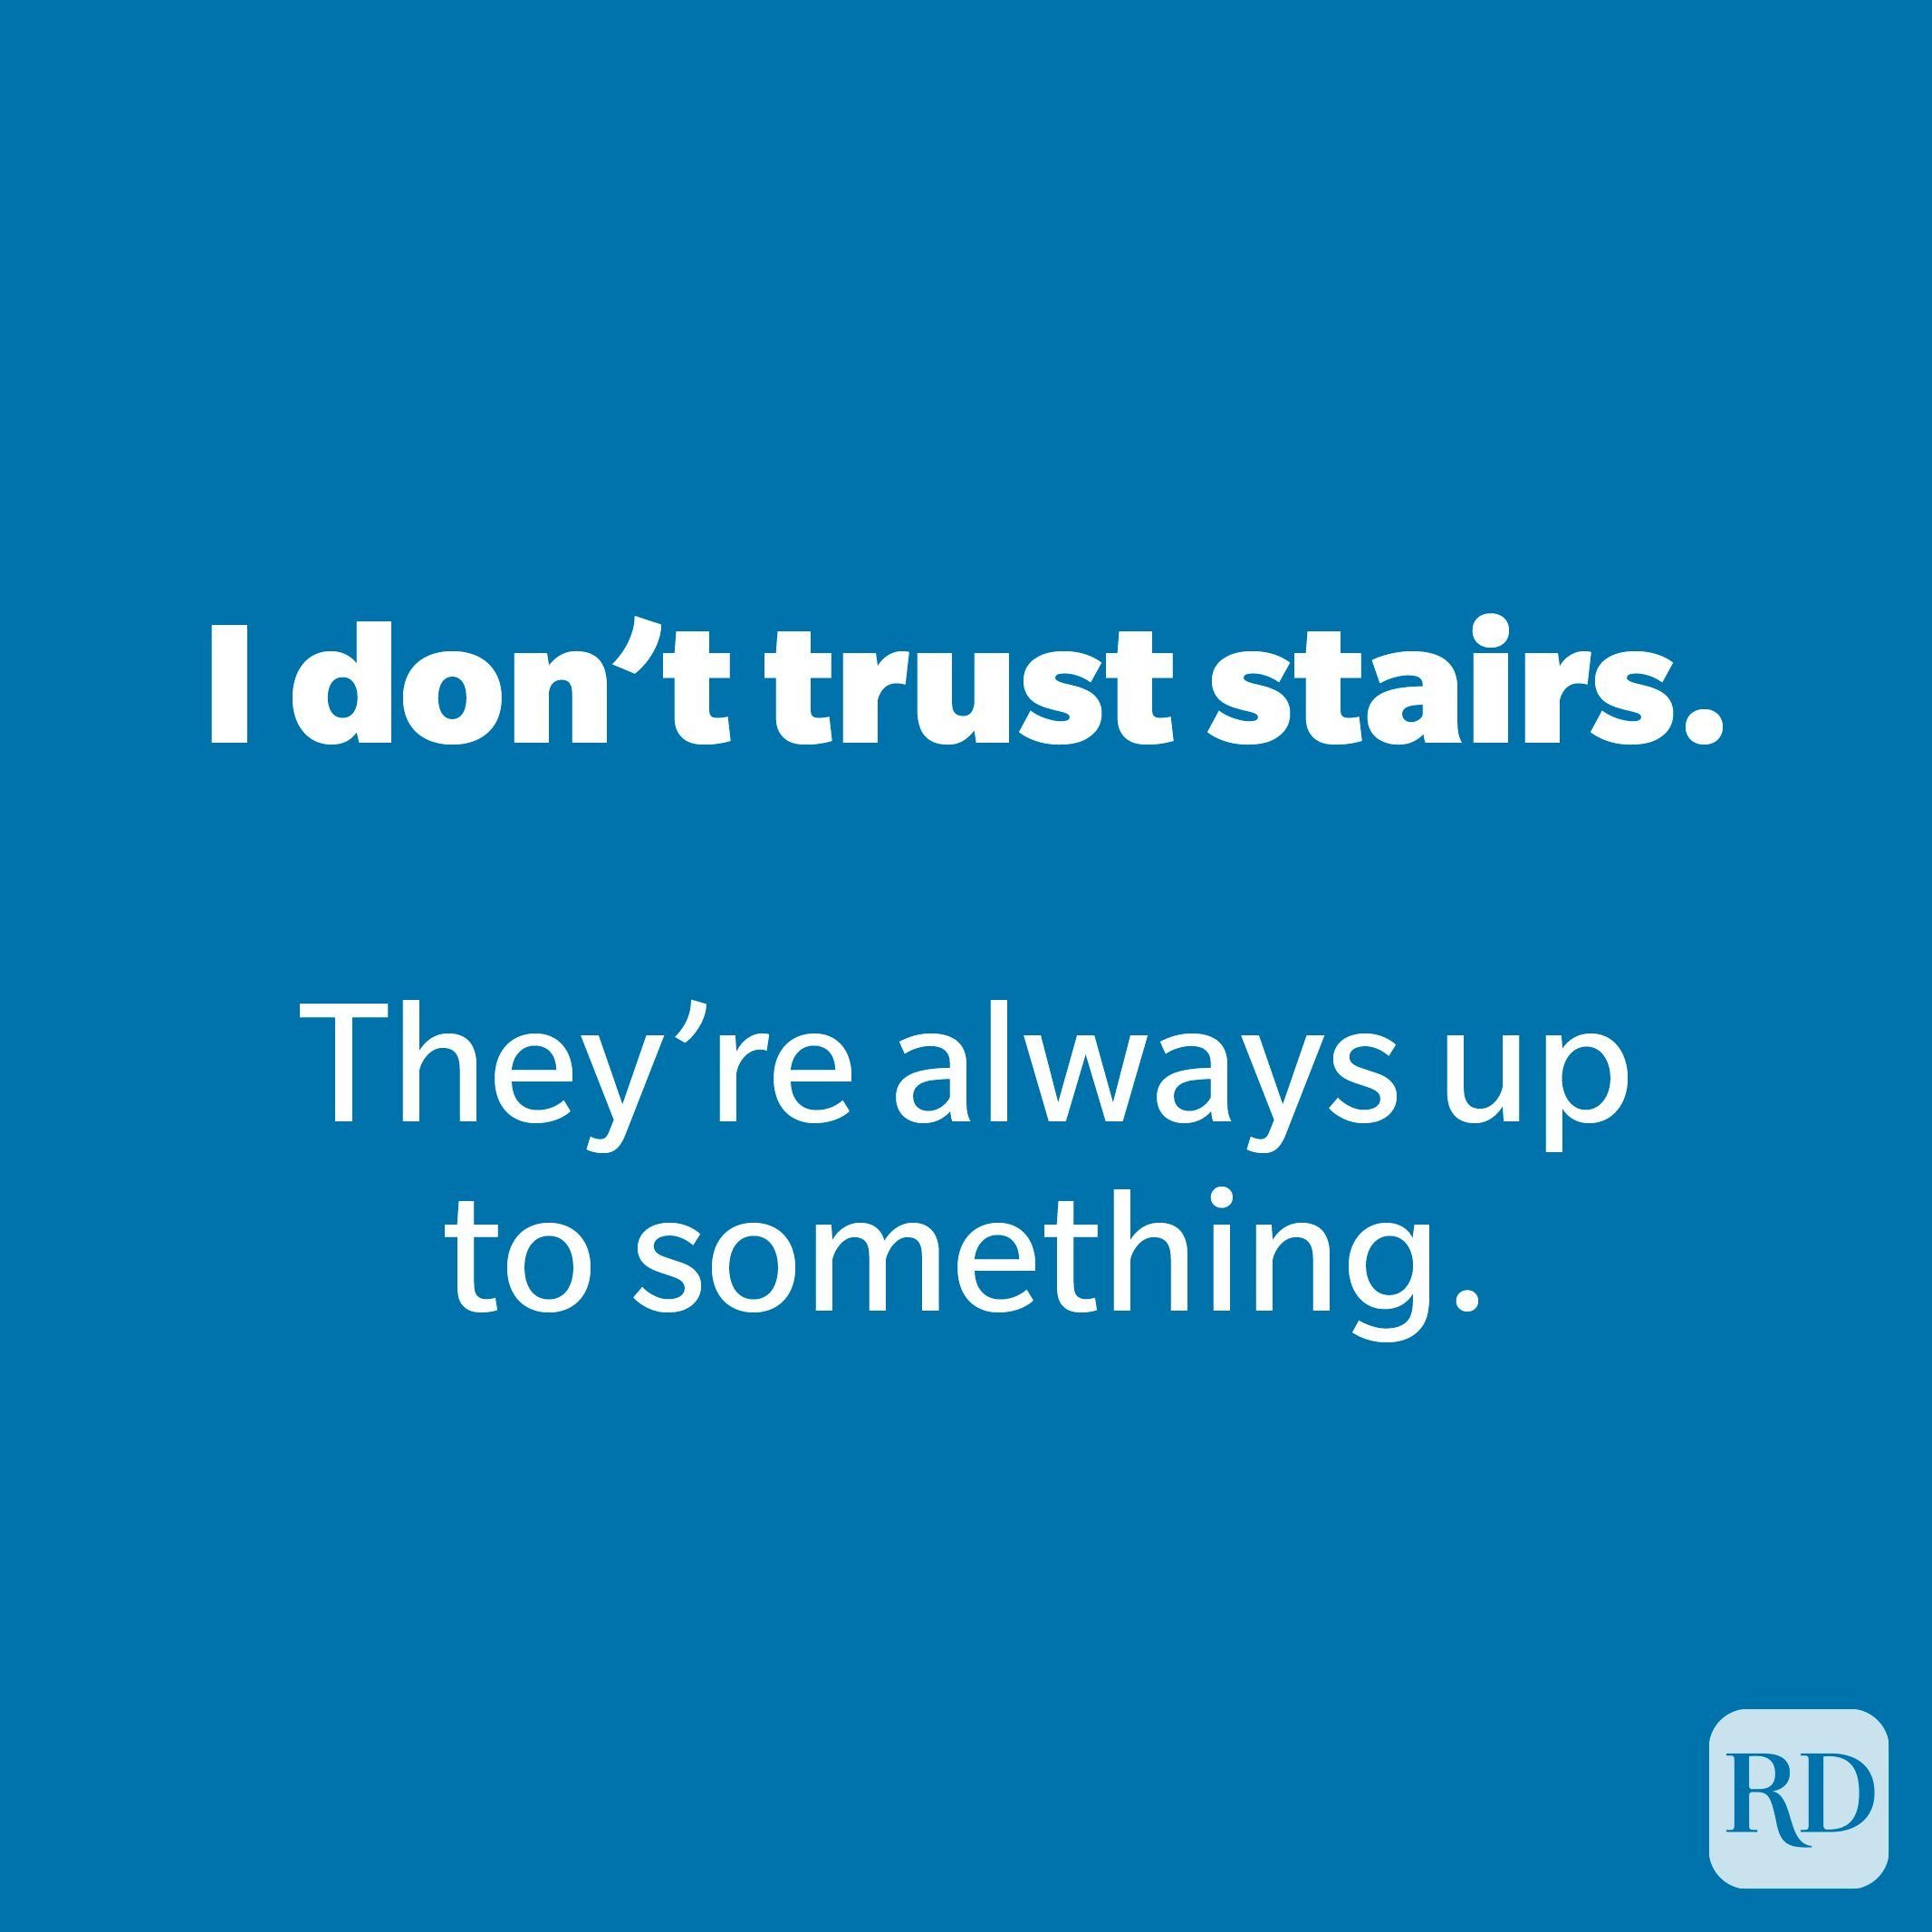 I don't trust stairs.